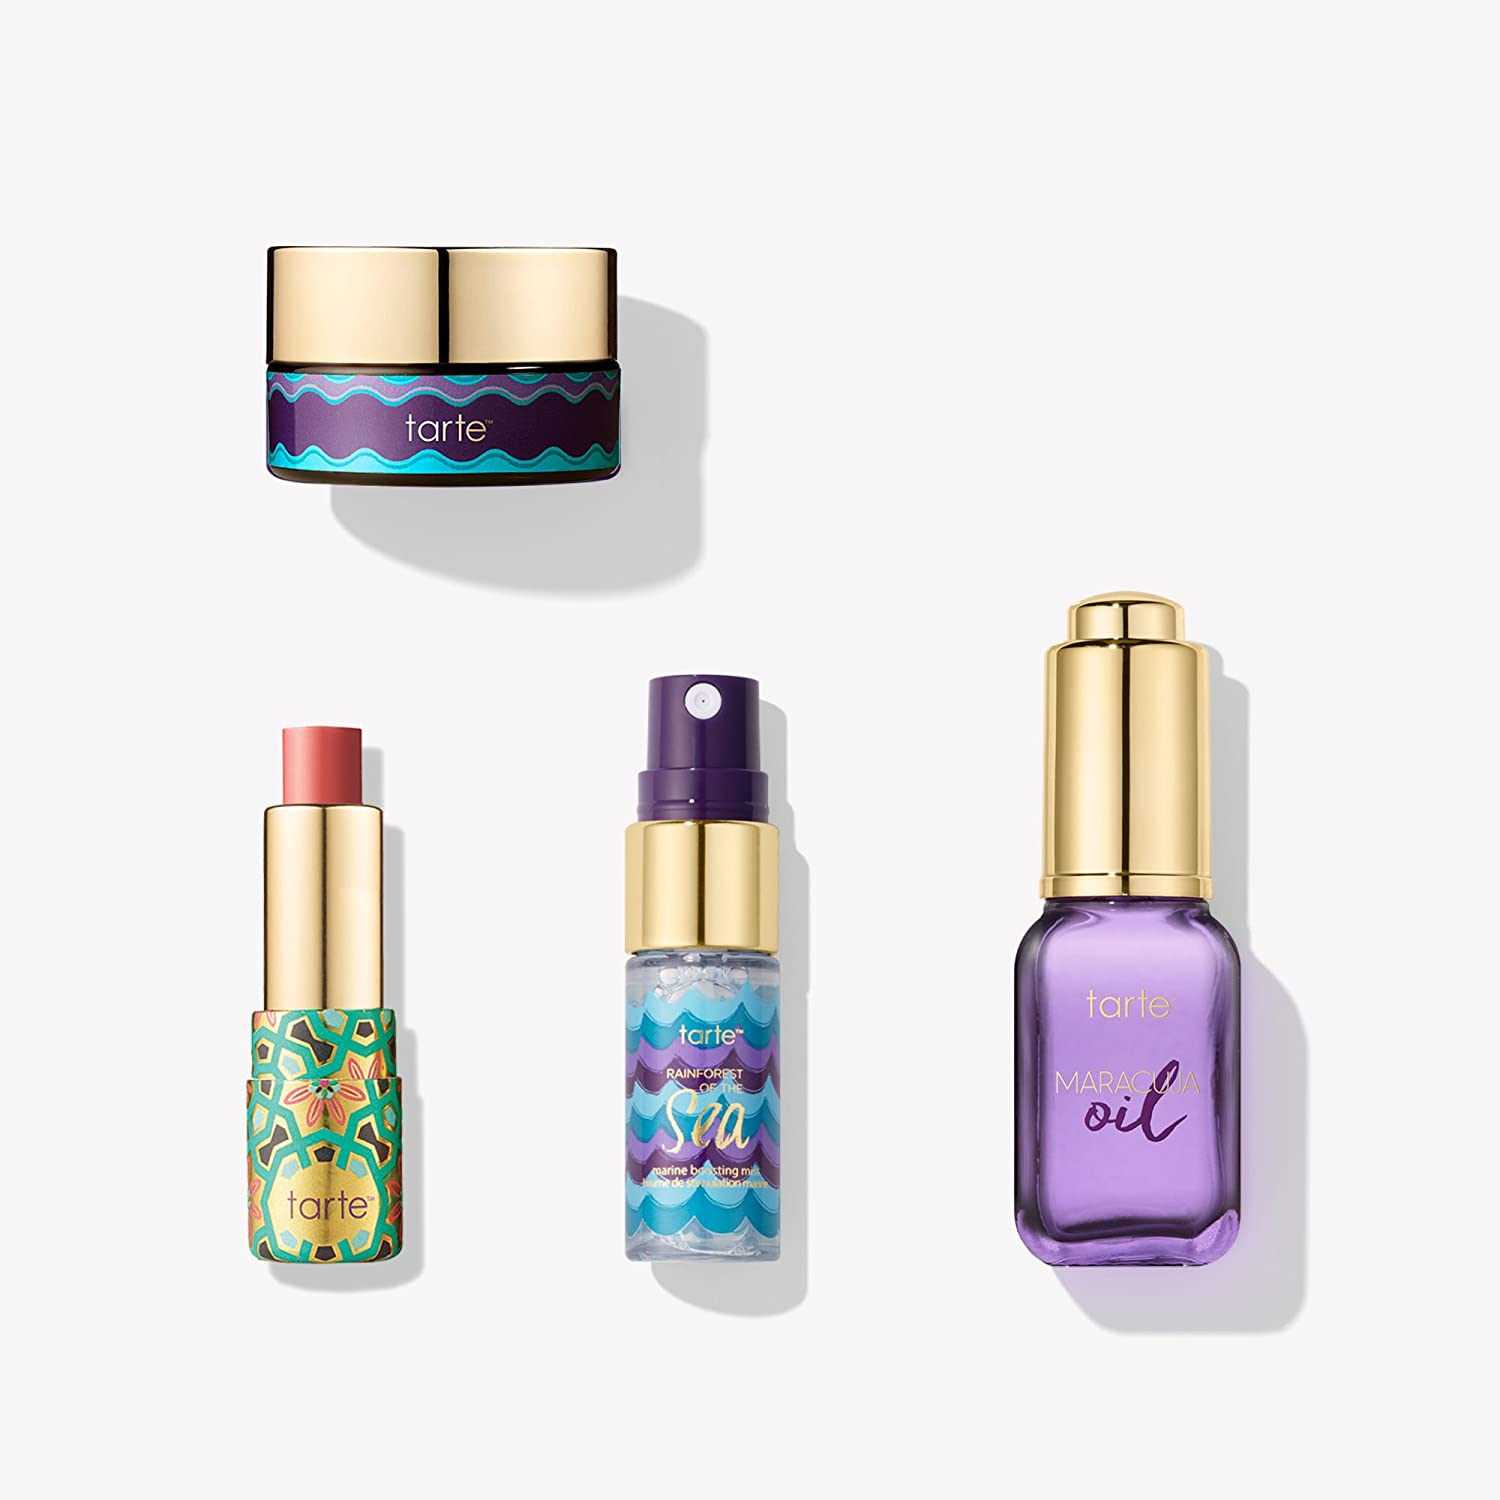 Tarte Cosmetics Skin Win Hydrating Skincare Travel Mini Set Limited Edition 4 Piece